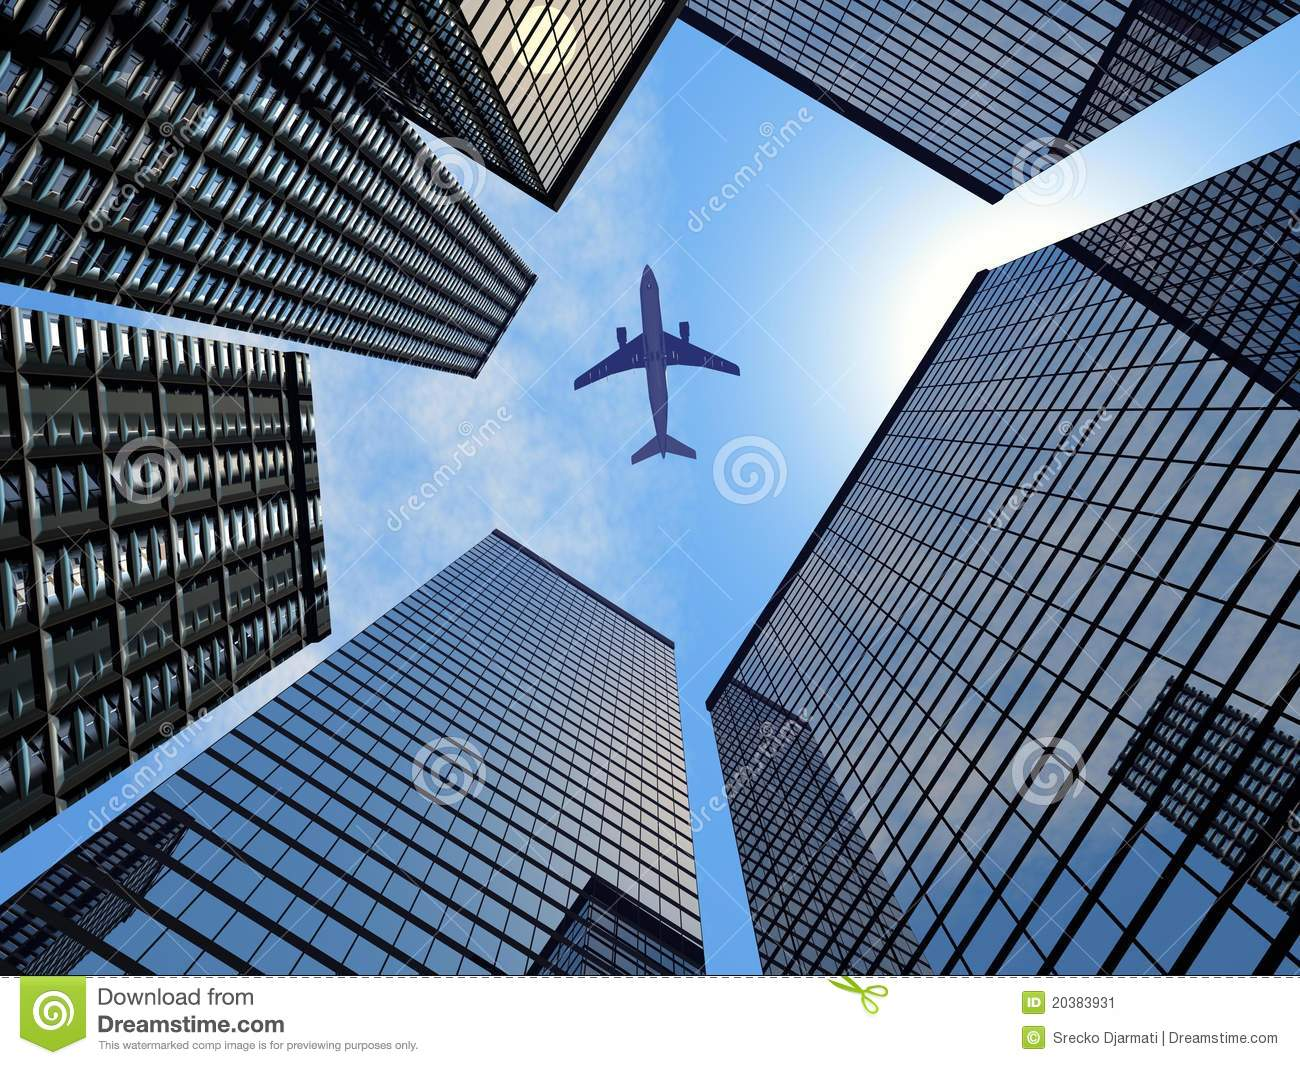 """""""101: The Skyscraper and the Airplane"""" Essay Sample"""